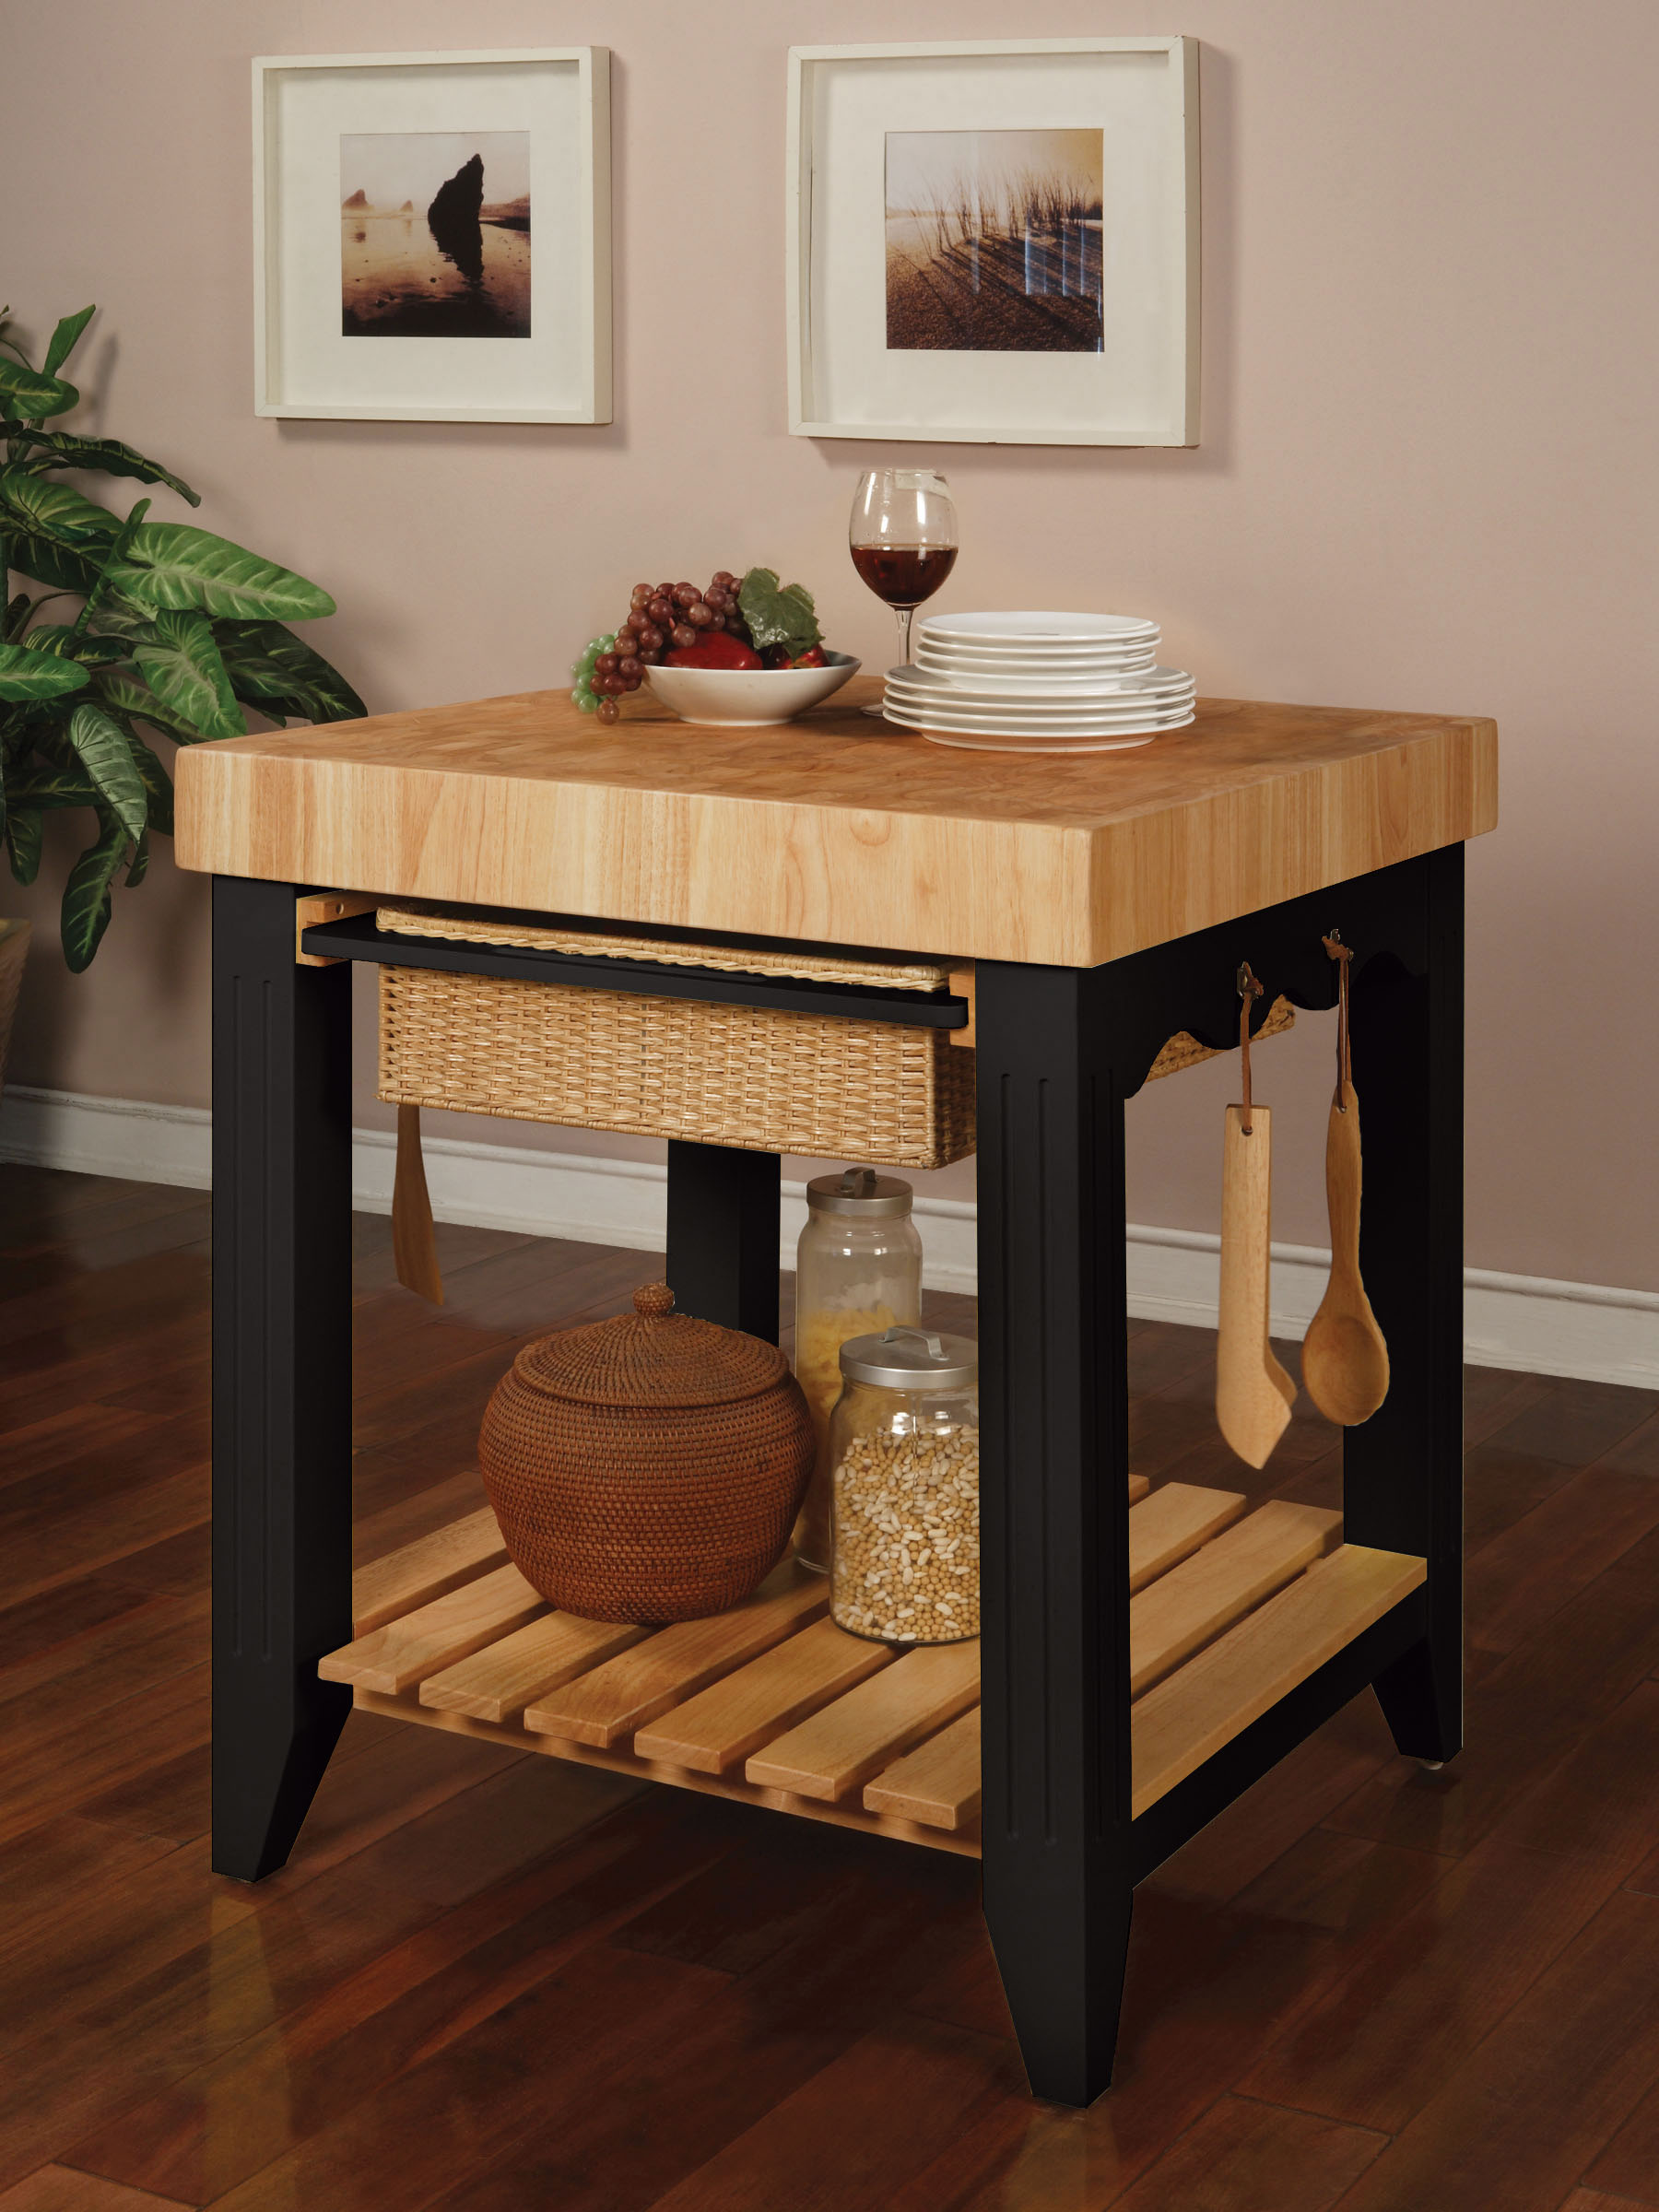 Powell Color Story Black Butcher Block Kitchen Island by OJ Commerce 502-416 - $499.00